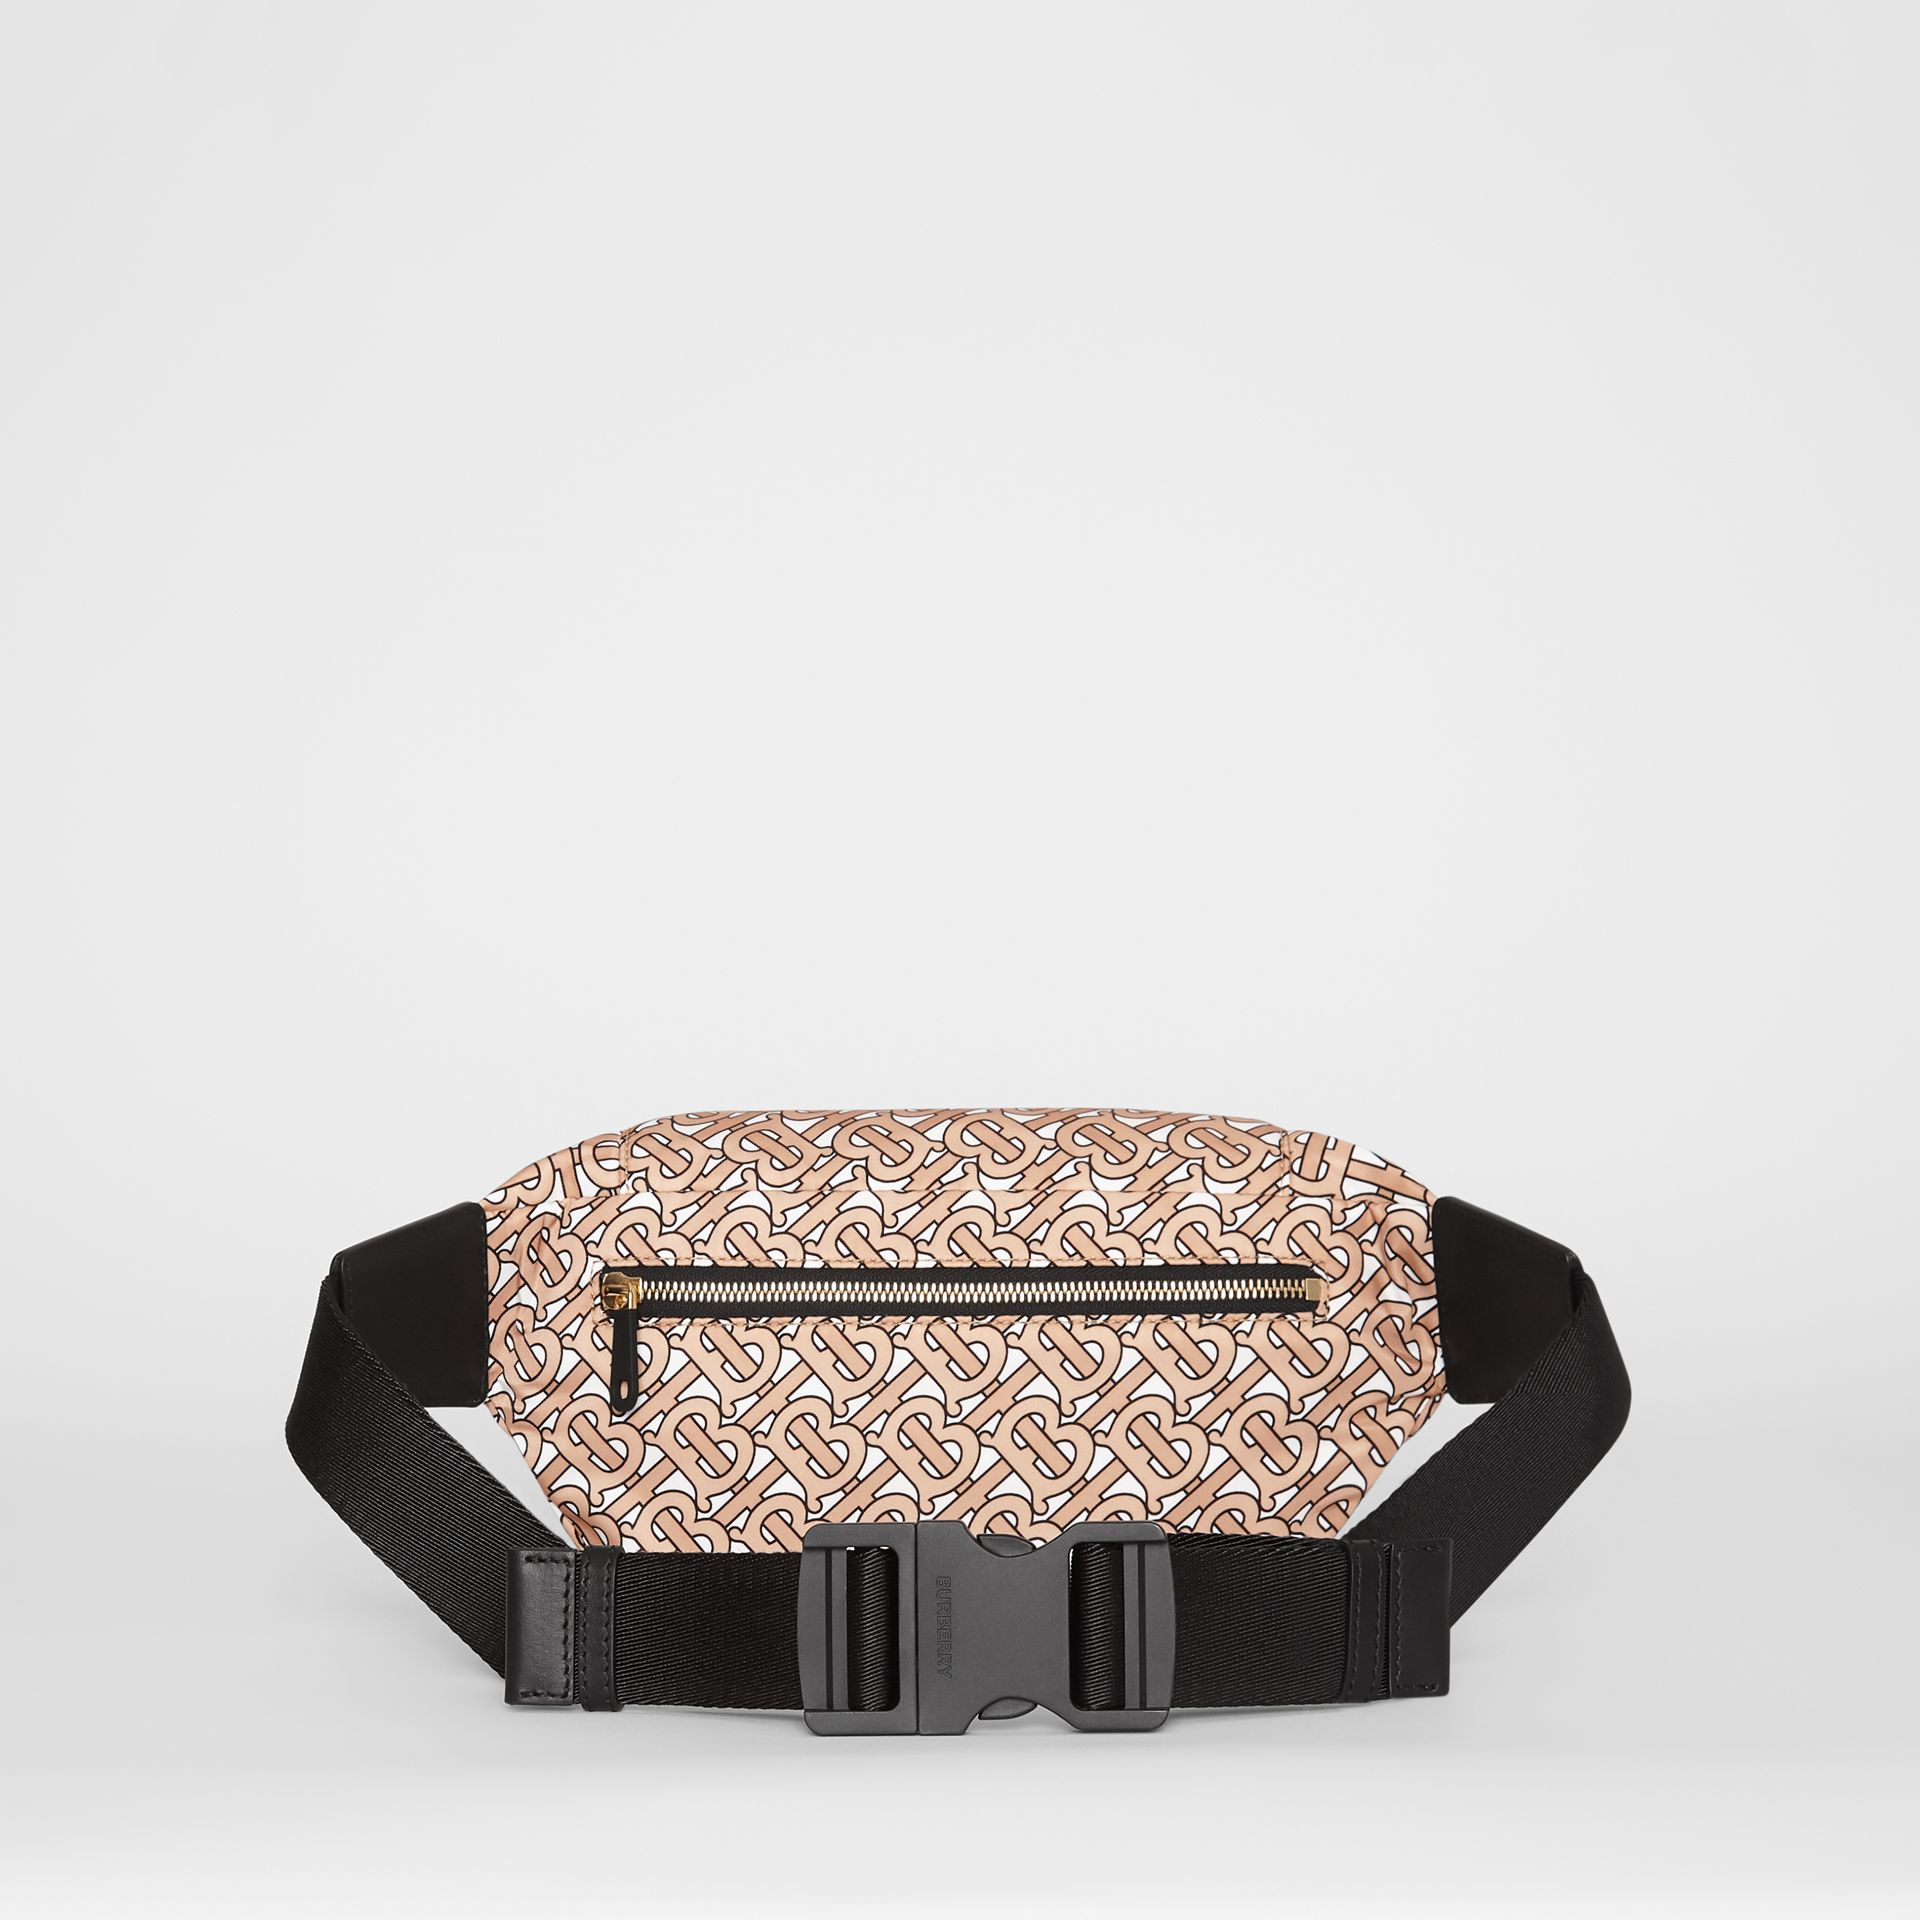 Medium Monogram Print Bum Bag in Beige | Burberry - gallery image 9